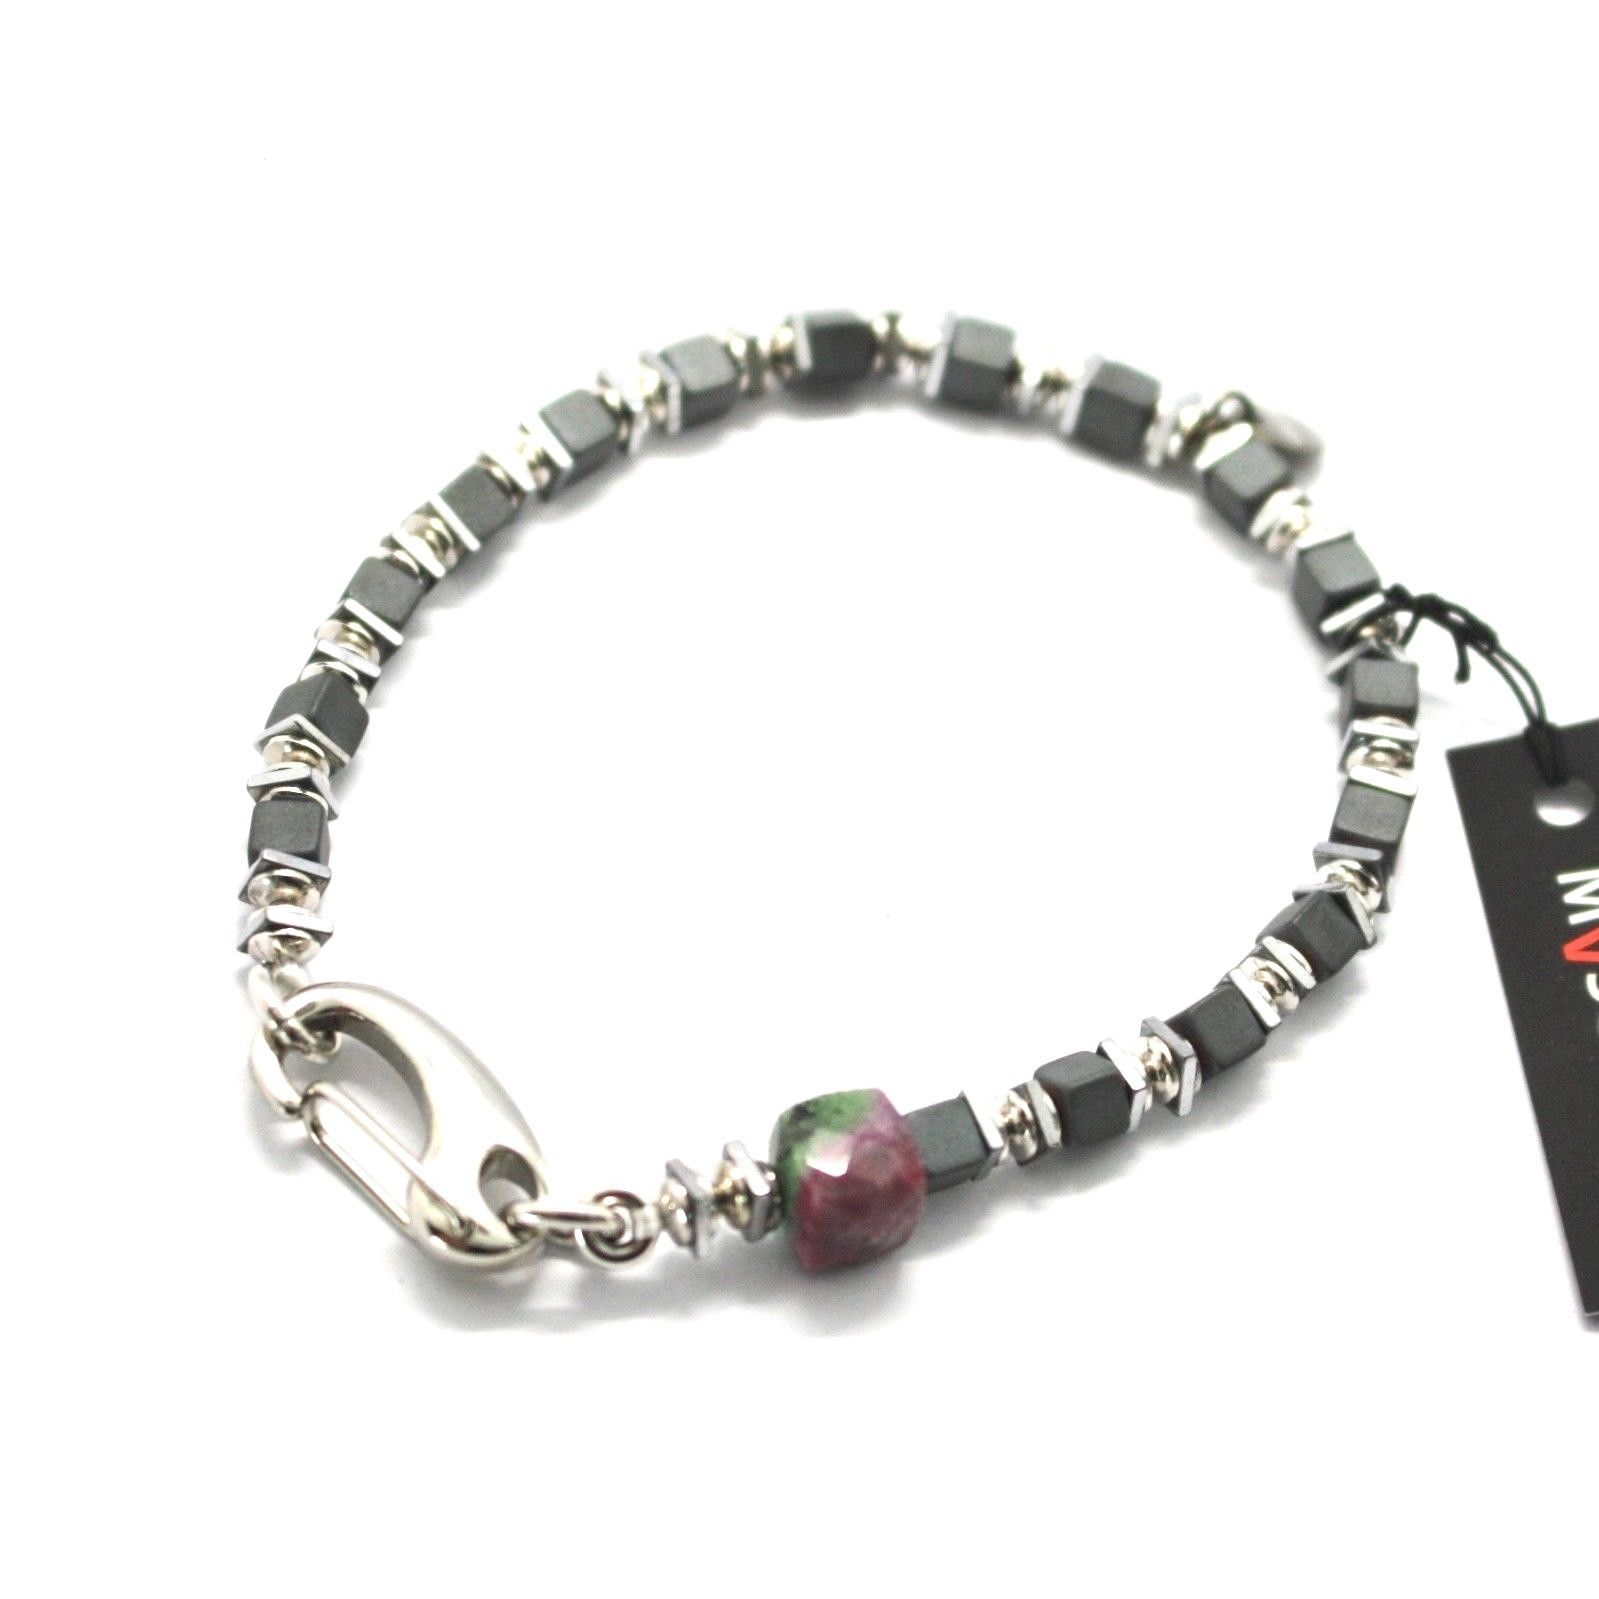 SILVER 925 BRACELET RUBY ZOISITE AND HEMATITE BPAN-9 MADE IN ITALY BY MASCHIA